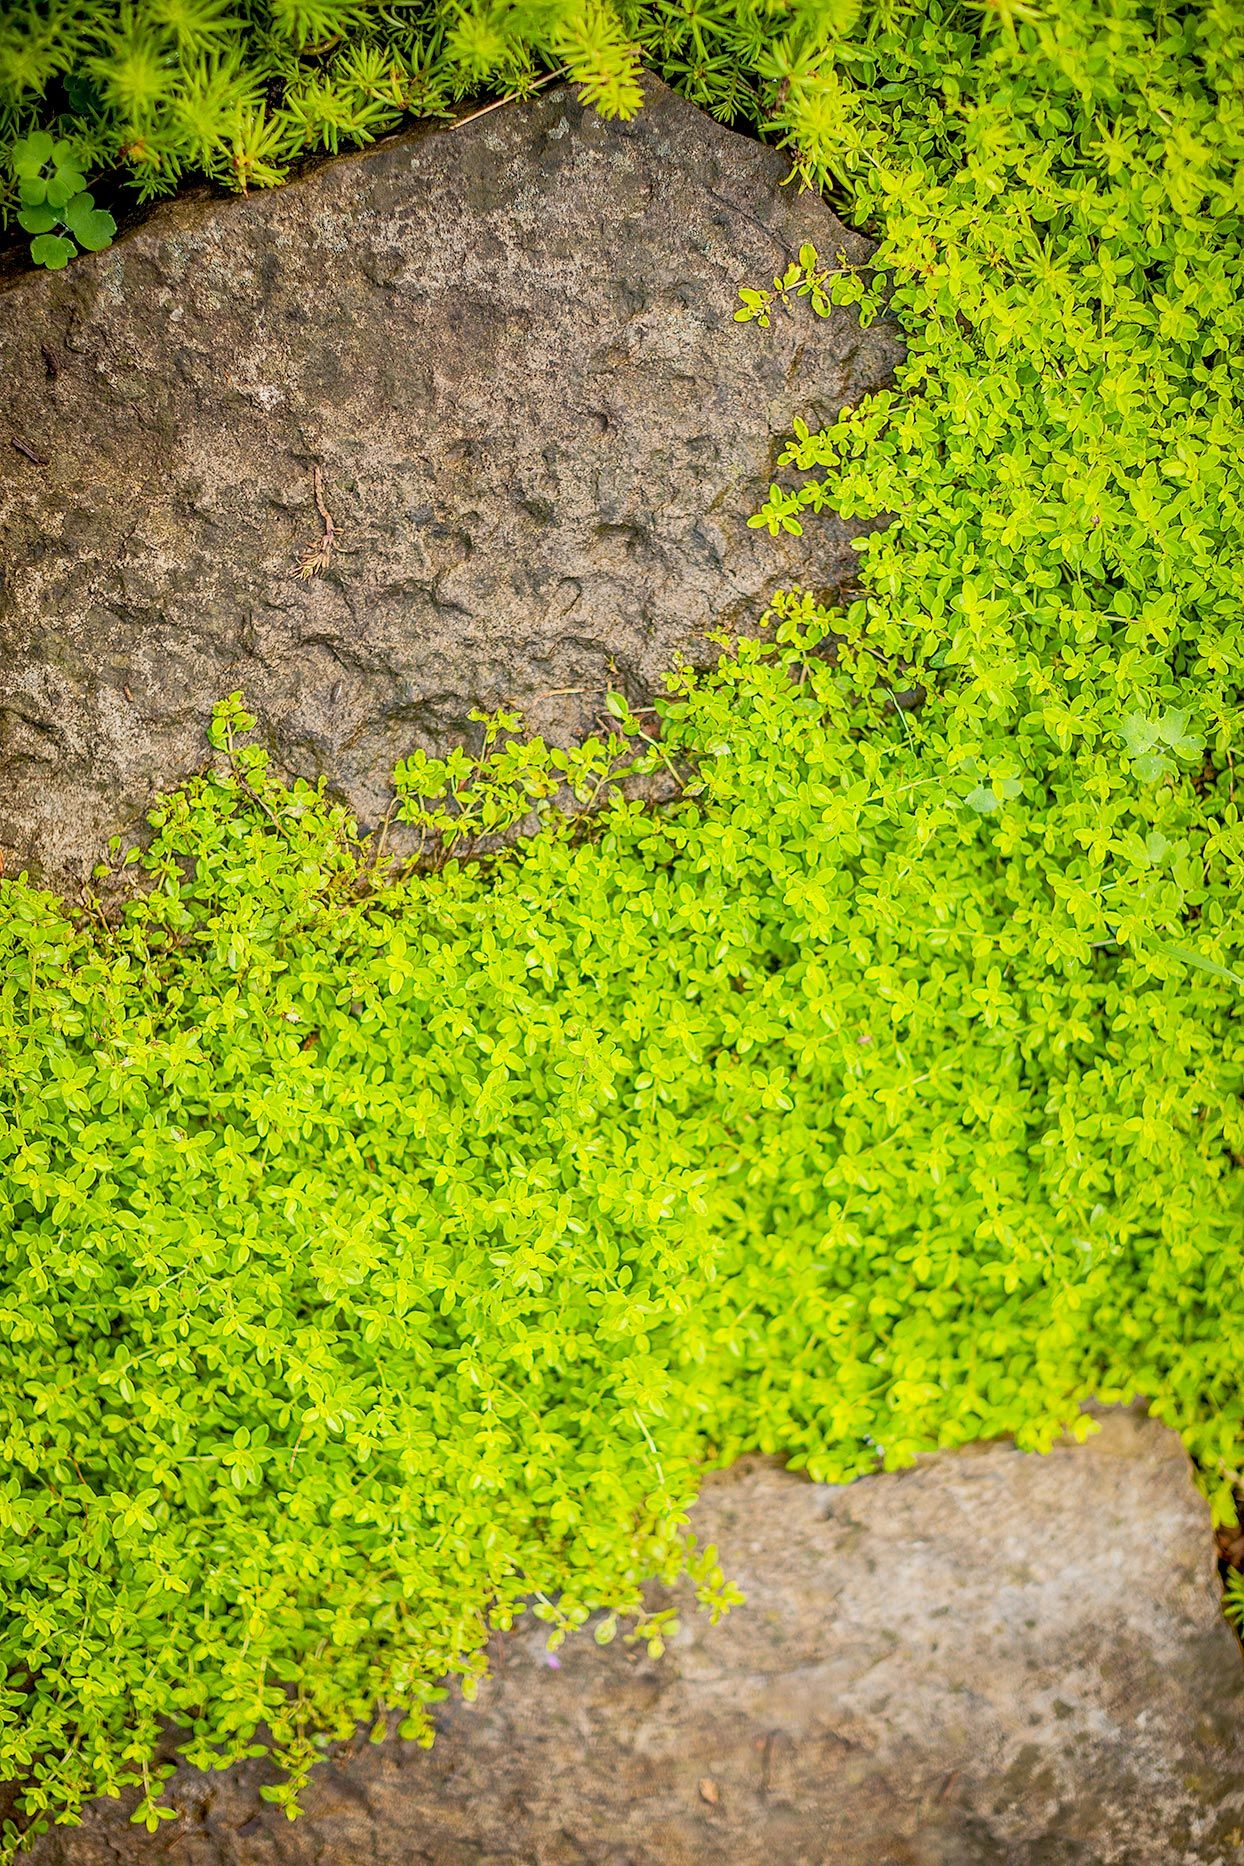 Thyme Ground Cover Perennials: 10 Great Groundcover Plants